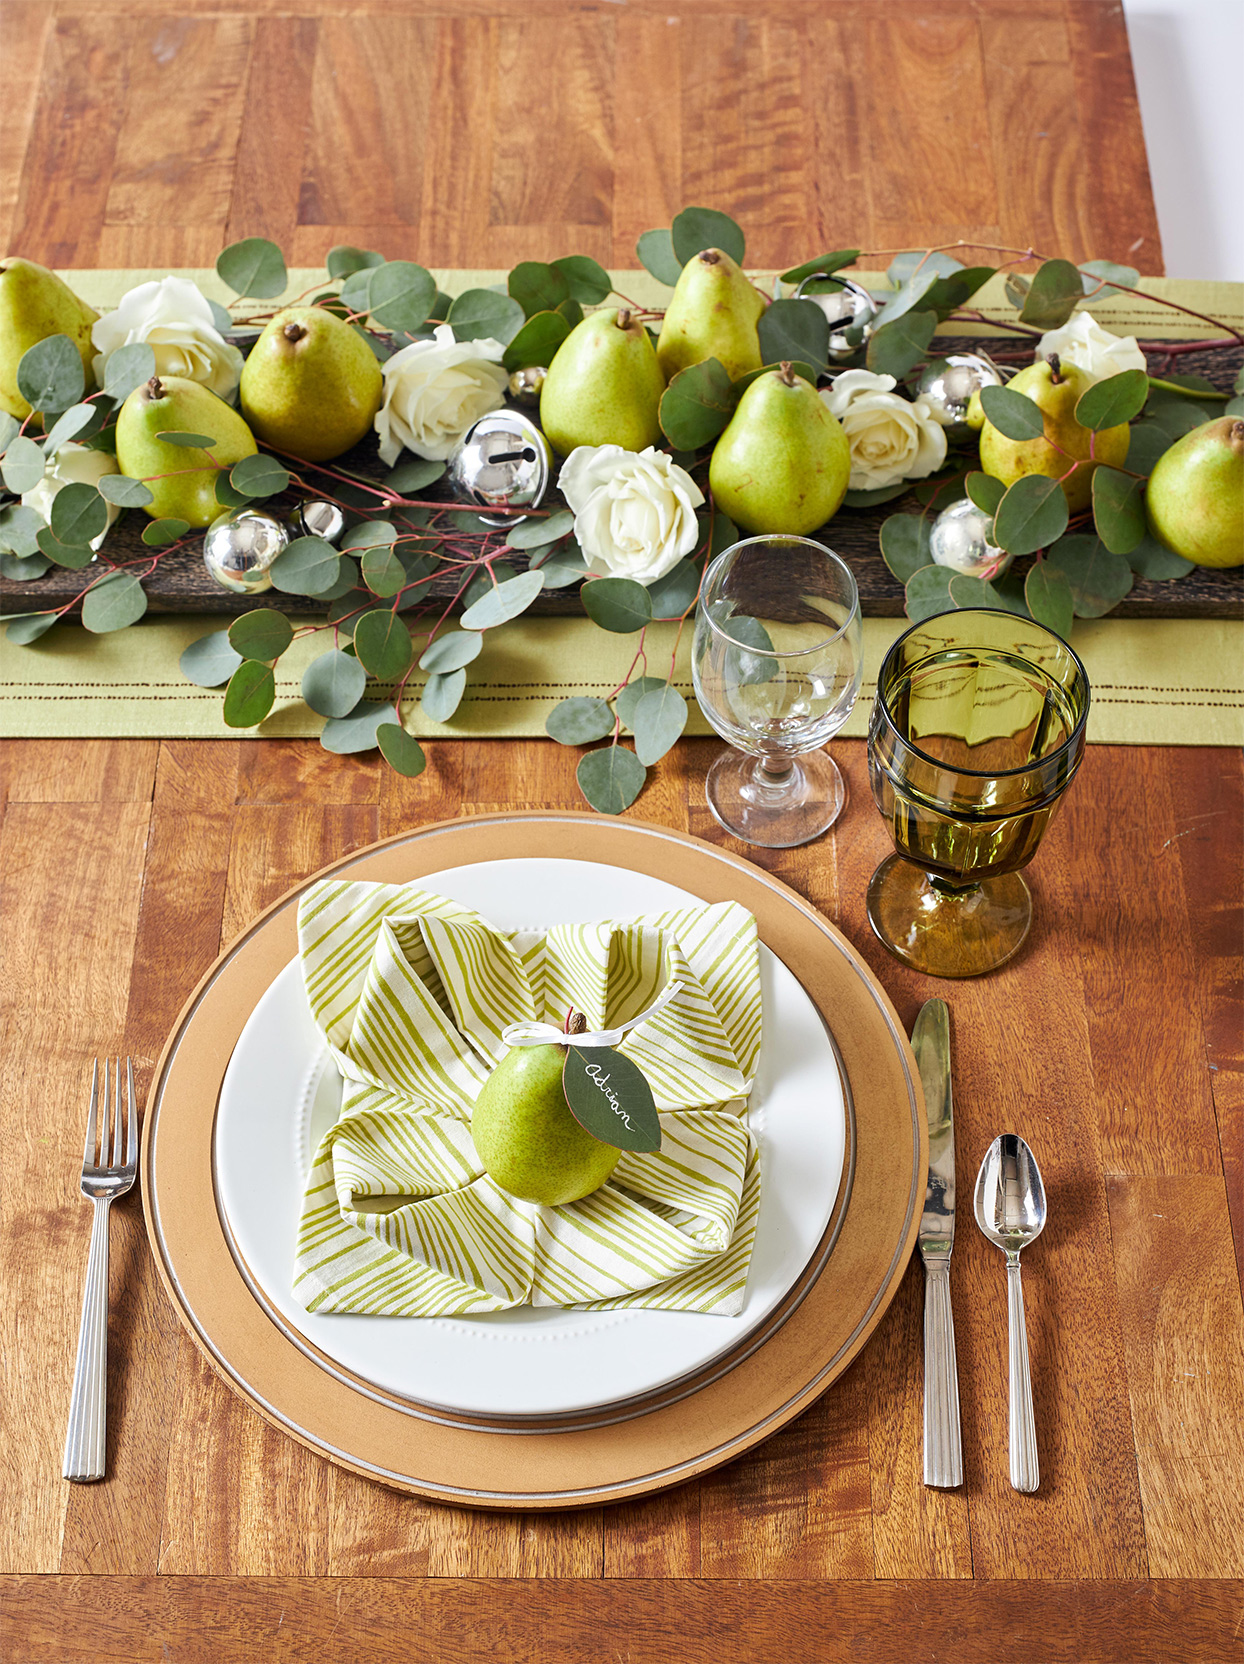 green and white place setting decorated with pears